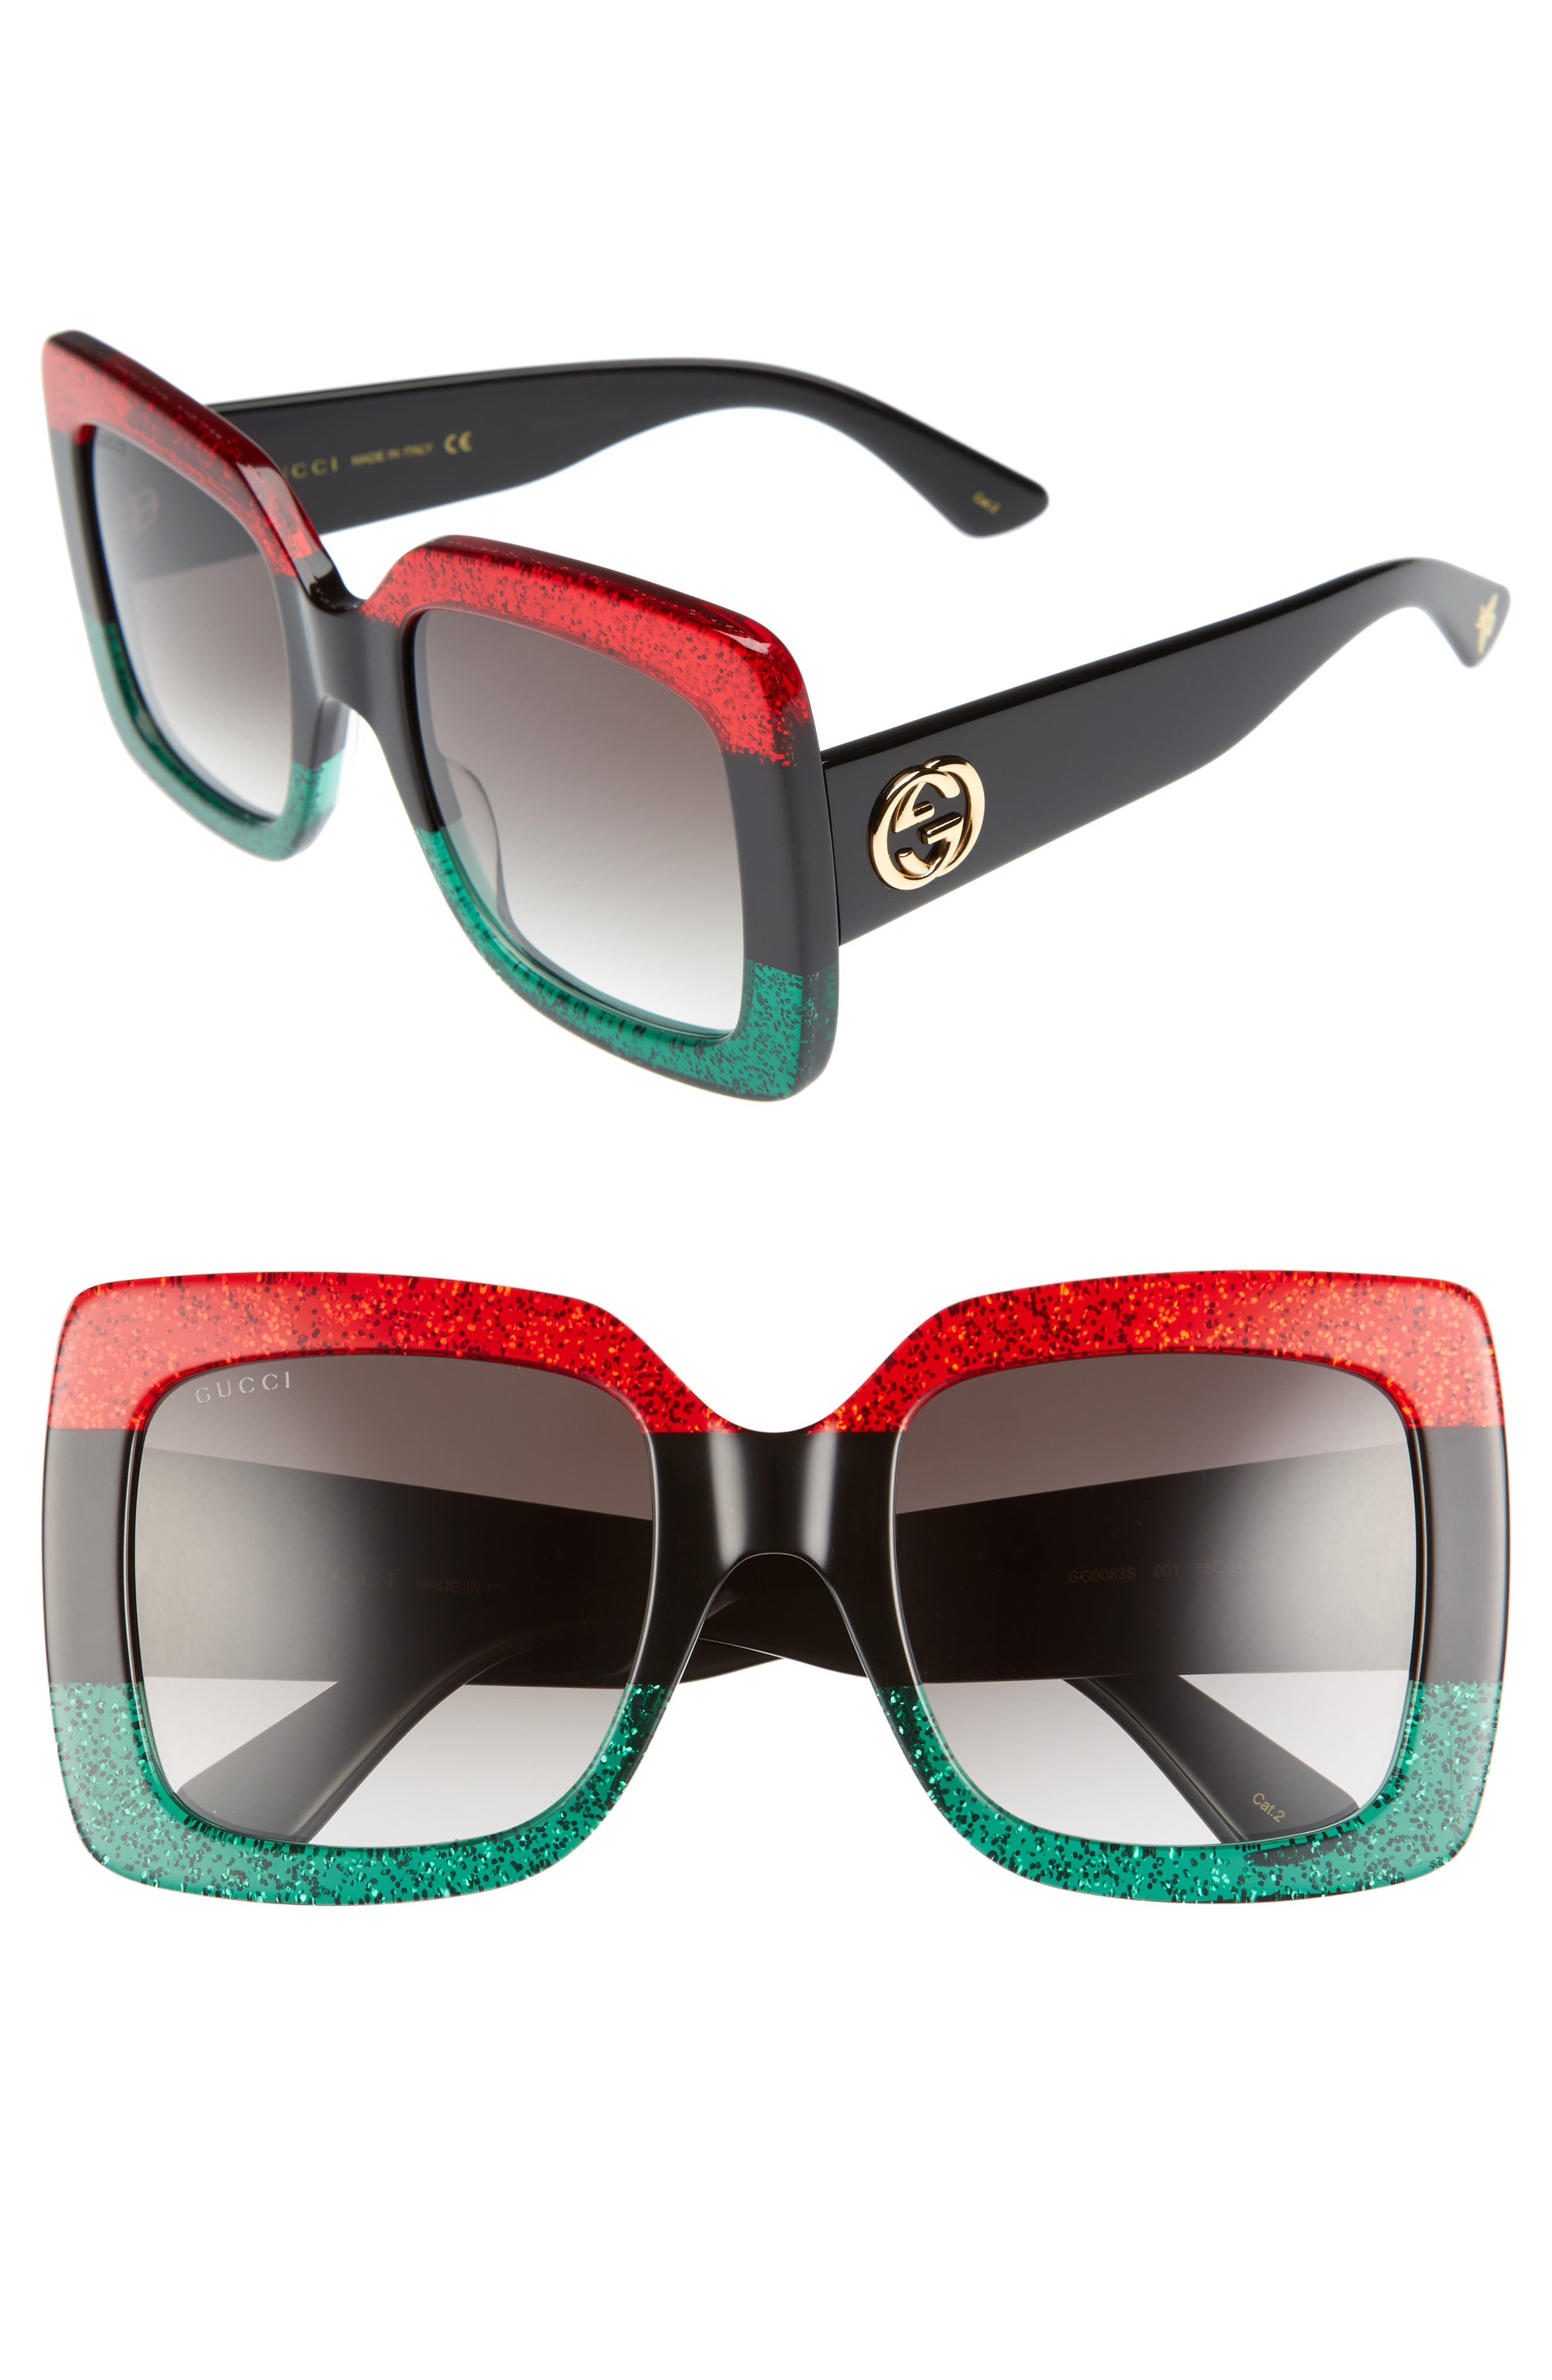 gucci sunglasses. gucci 55mm square sunglasses